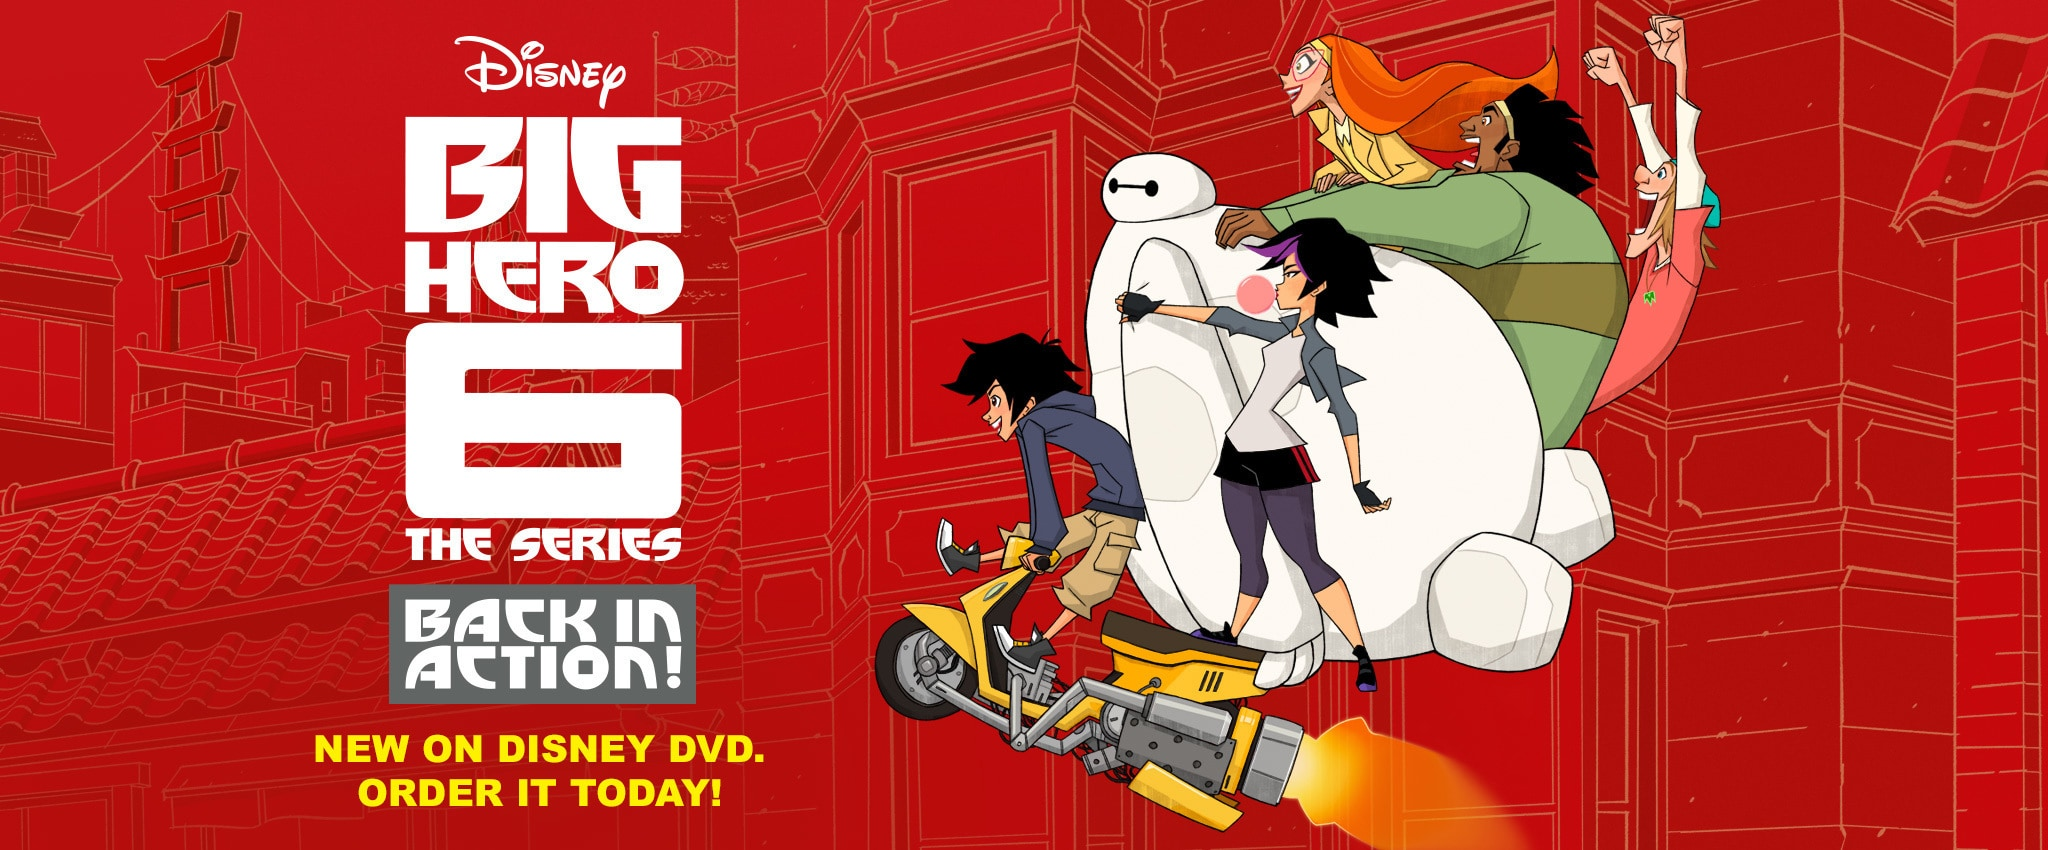 Big Hero 6 - Baymax Returns - New on Disney DVD. Order it today!